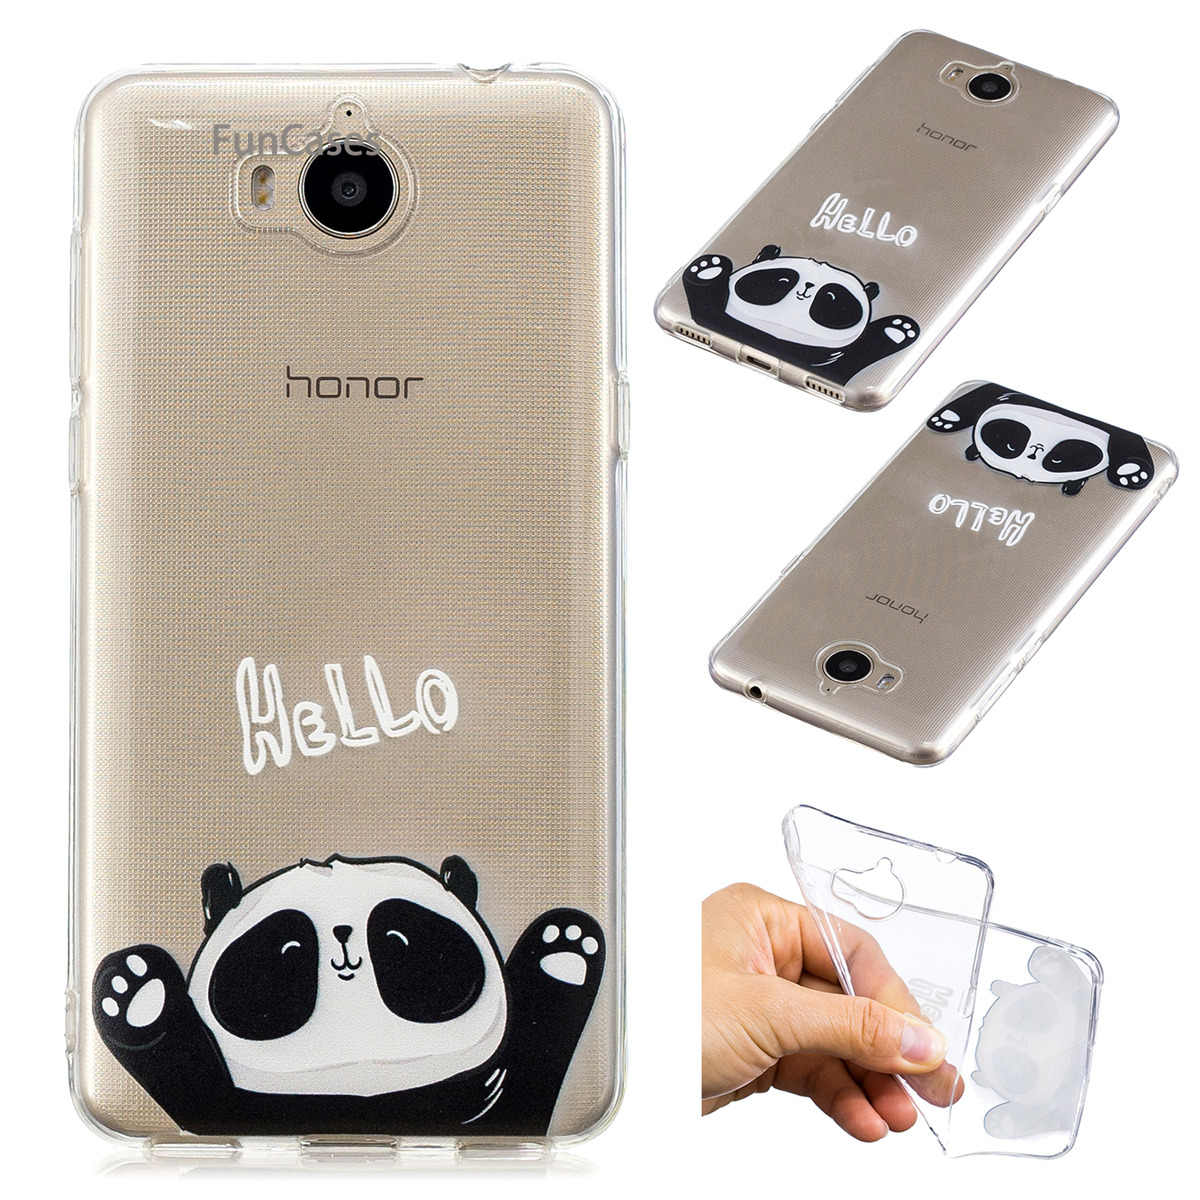 Hello Panda Phone Case sFor Etui Huawei Y5 2017 Soft Silicone Back Cover Hoesje Phone Case Huawei Ascend Y6 2017 Honor Play 6